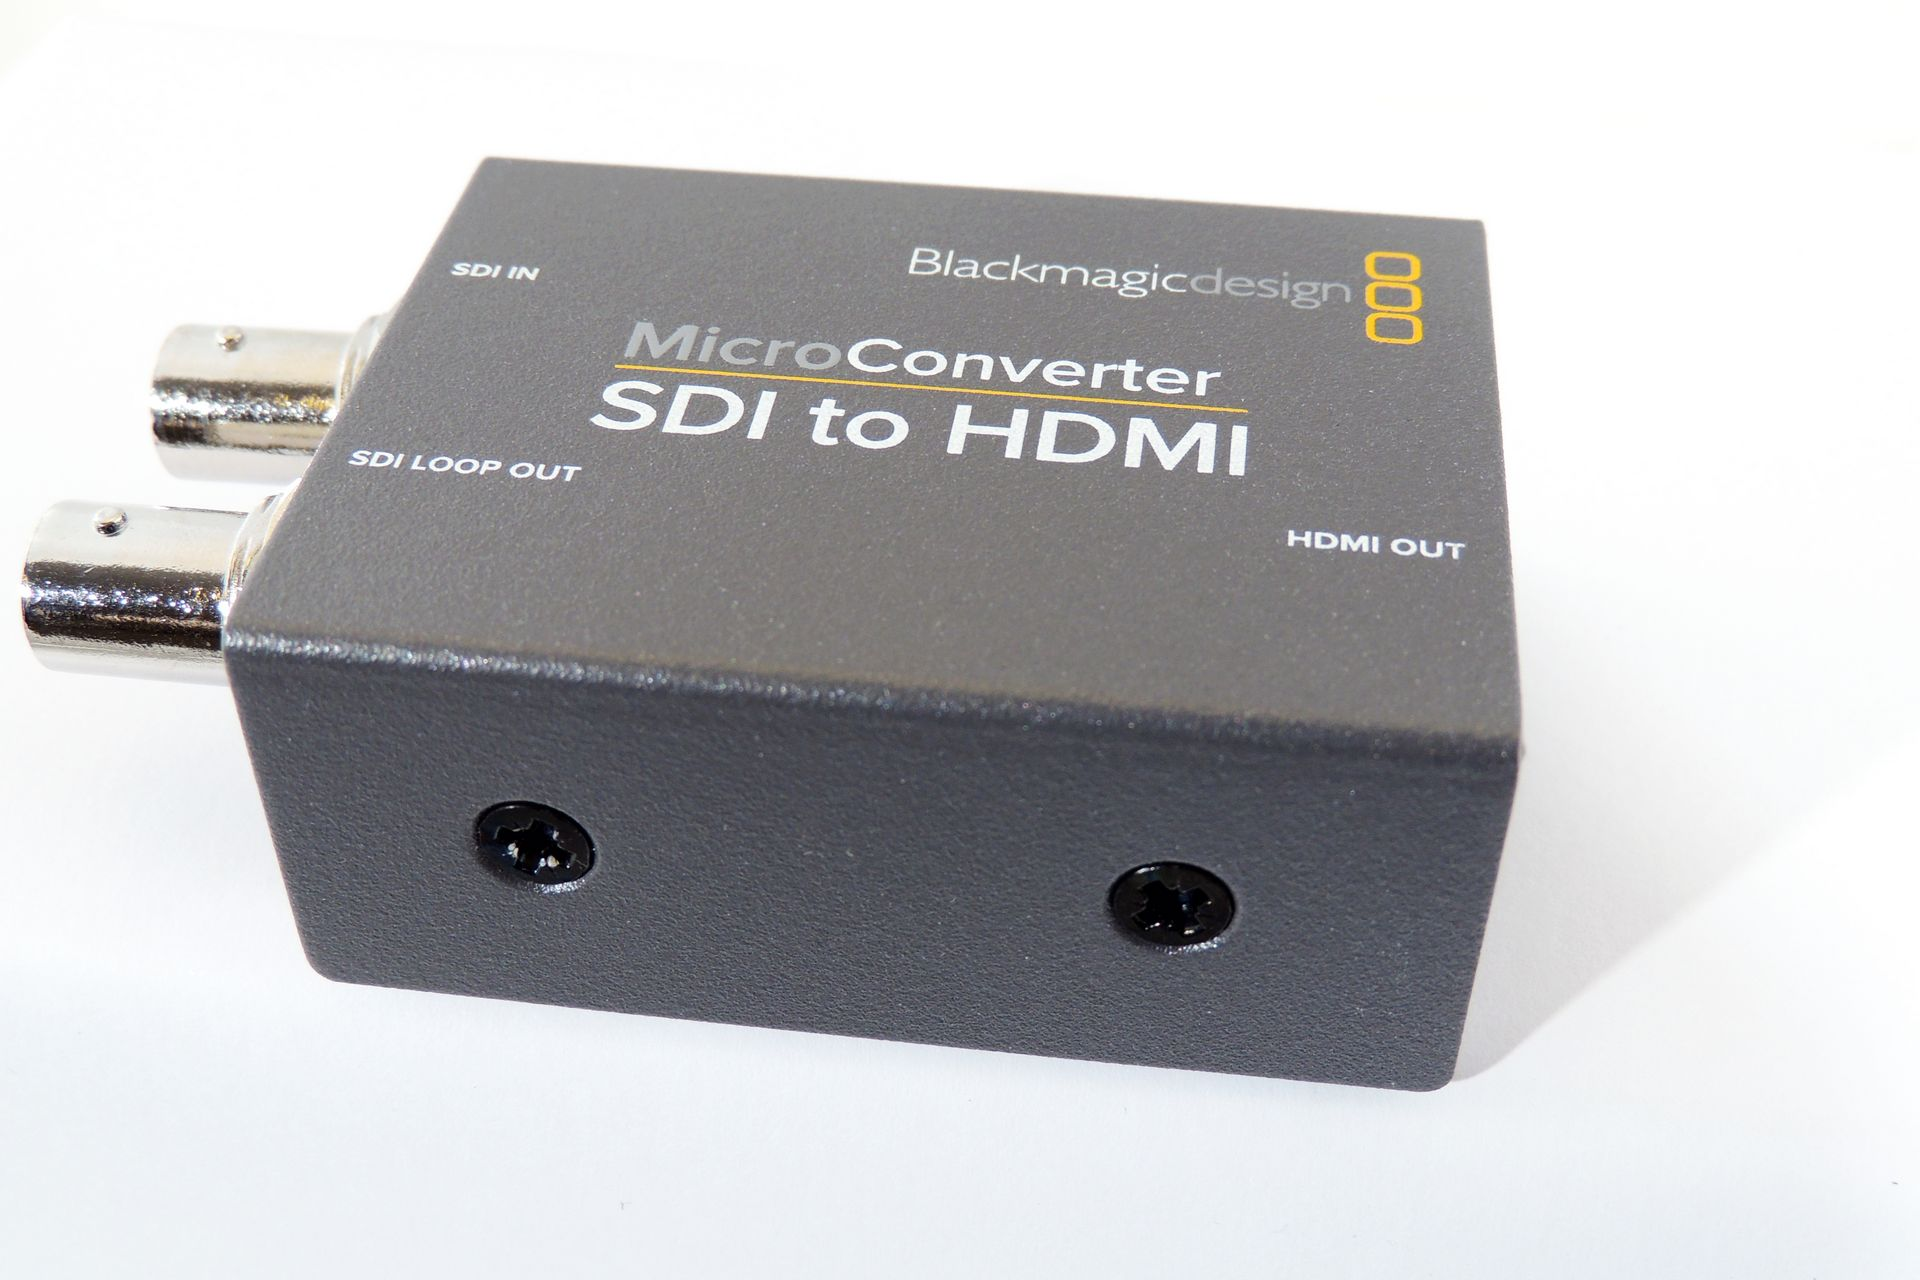 Black Magic Design SDI to HDMI converter for sale at Plasma Music